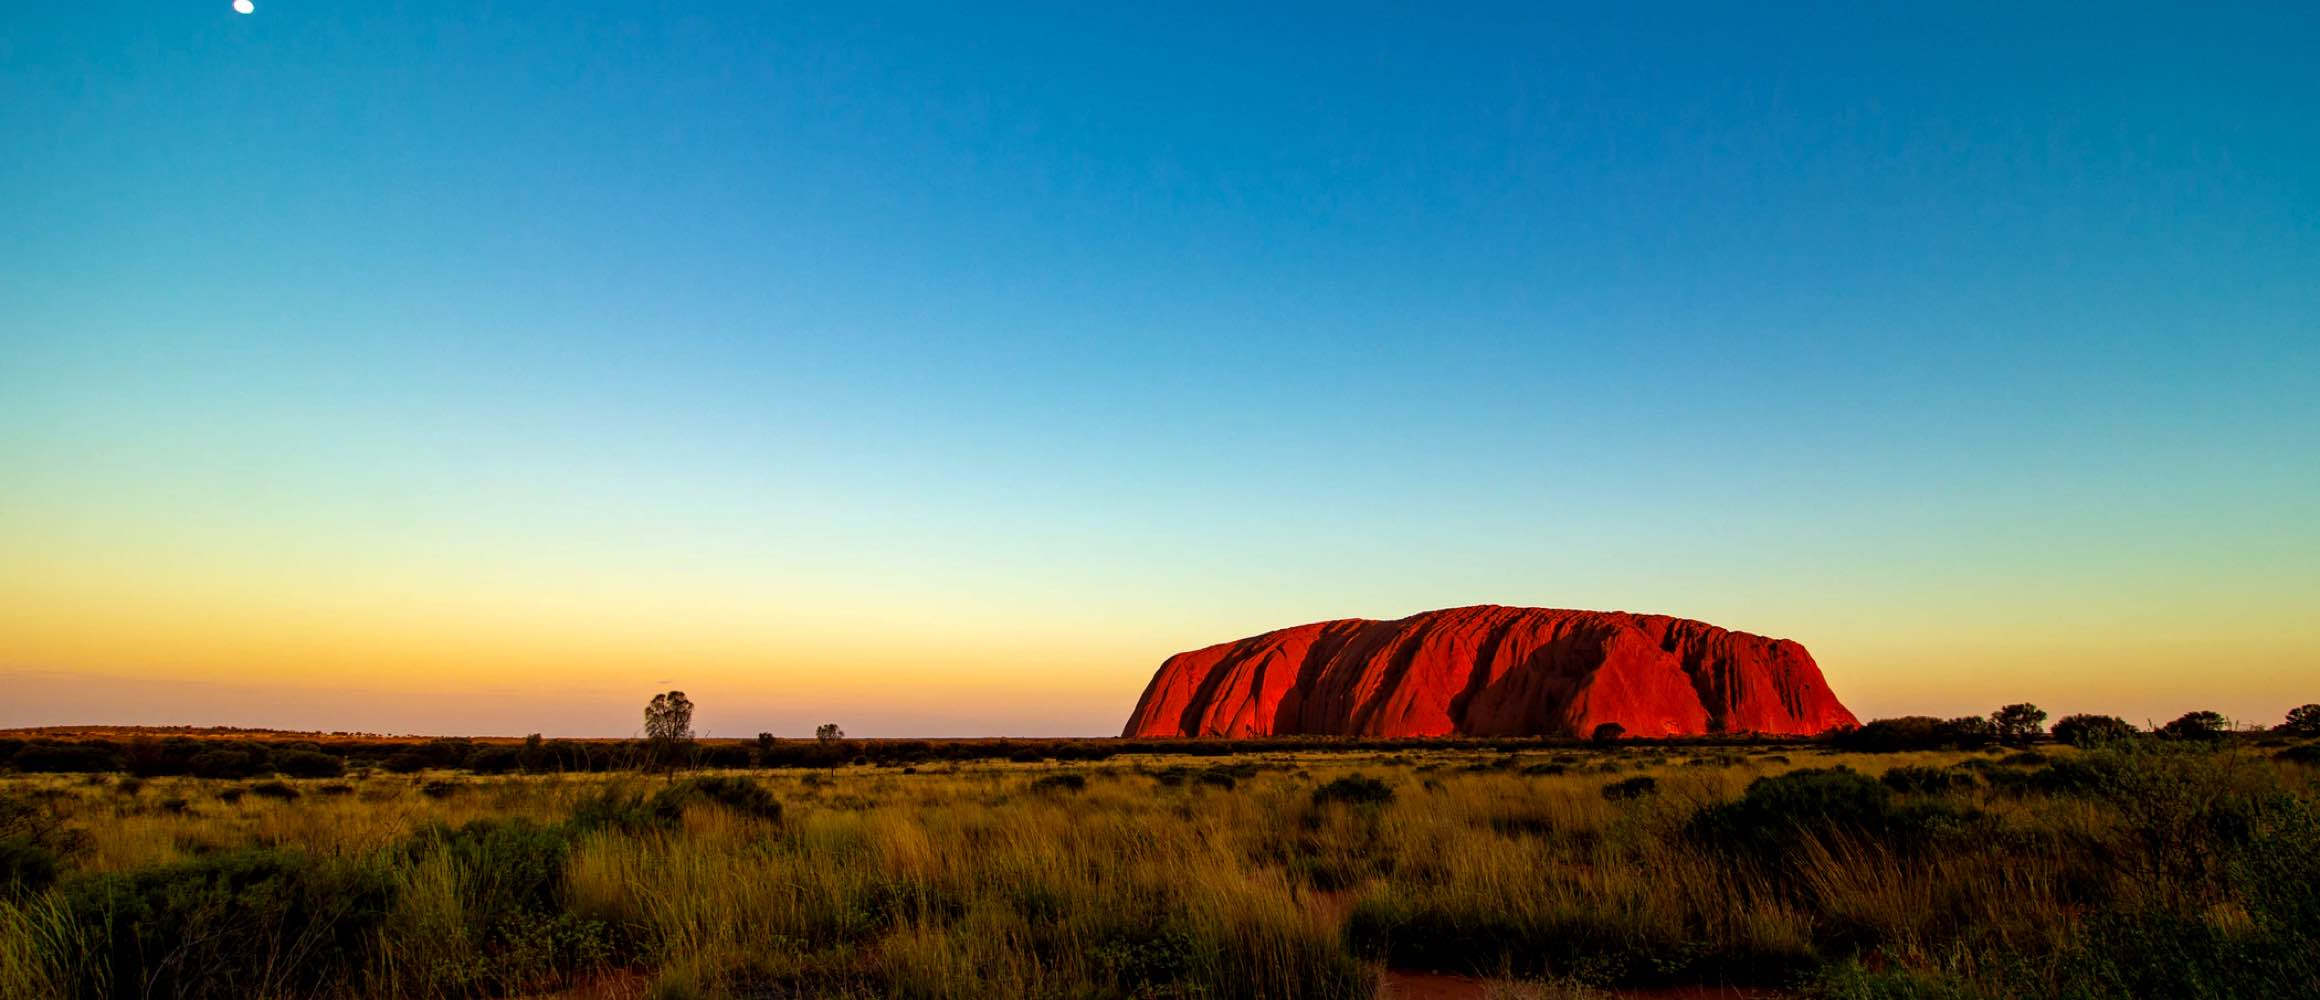 Ayers rock, Australia at Sunset